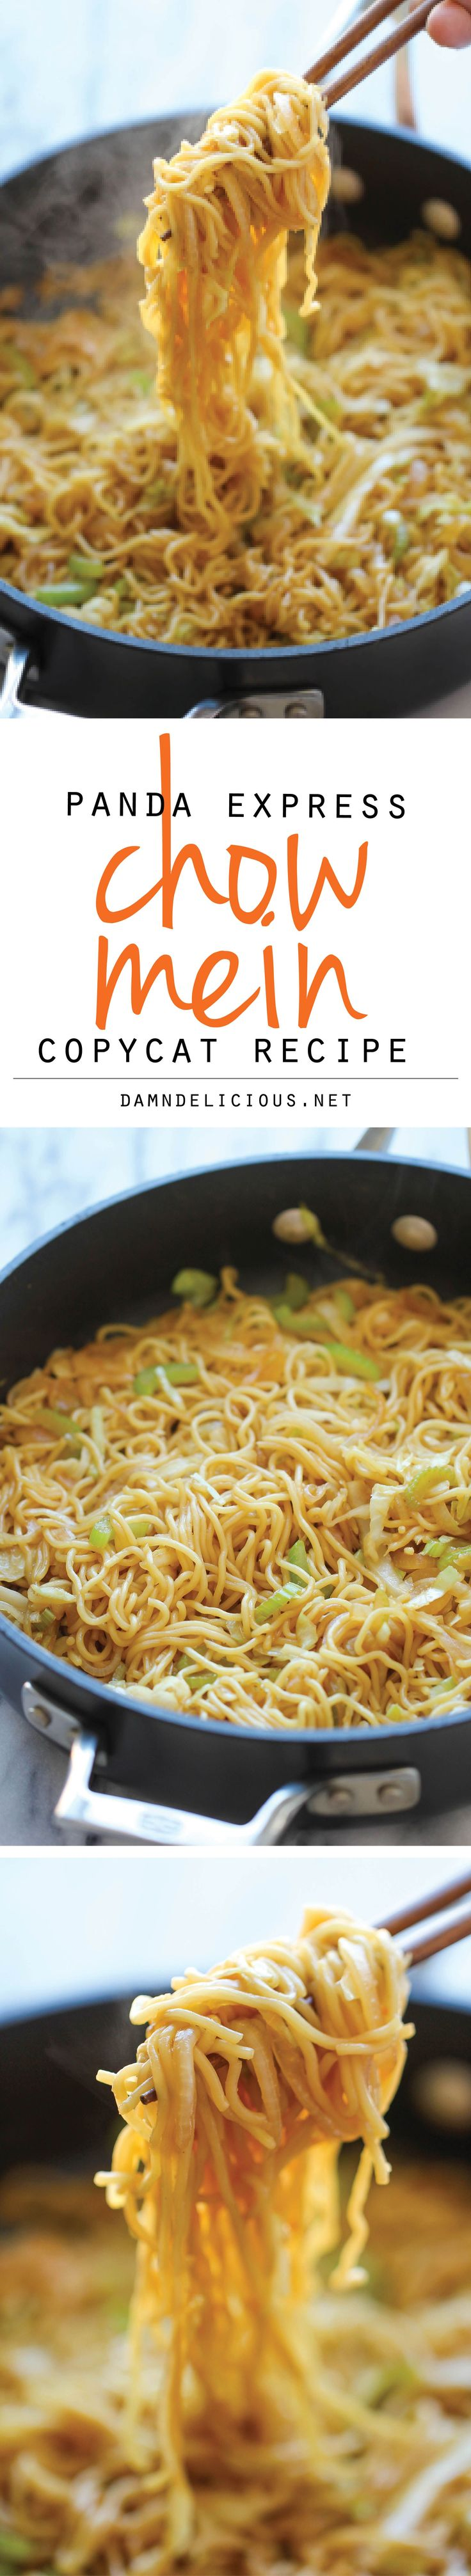 Panda Express Chow Mein Copycat - Tastes just like Panda Express except it takes just minutes to whip up and tastes a million times better! And can be adjusted to be a lot healthier.